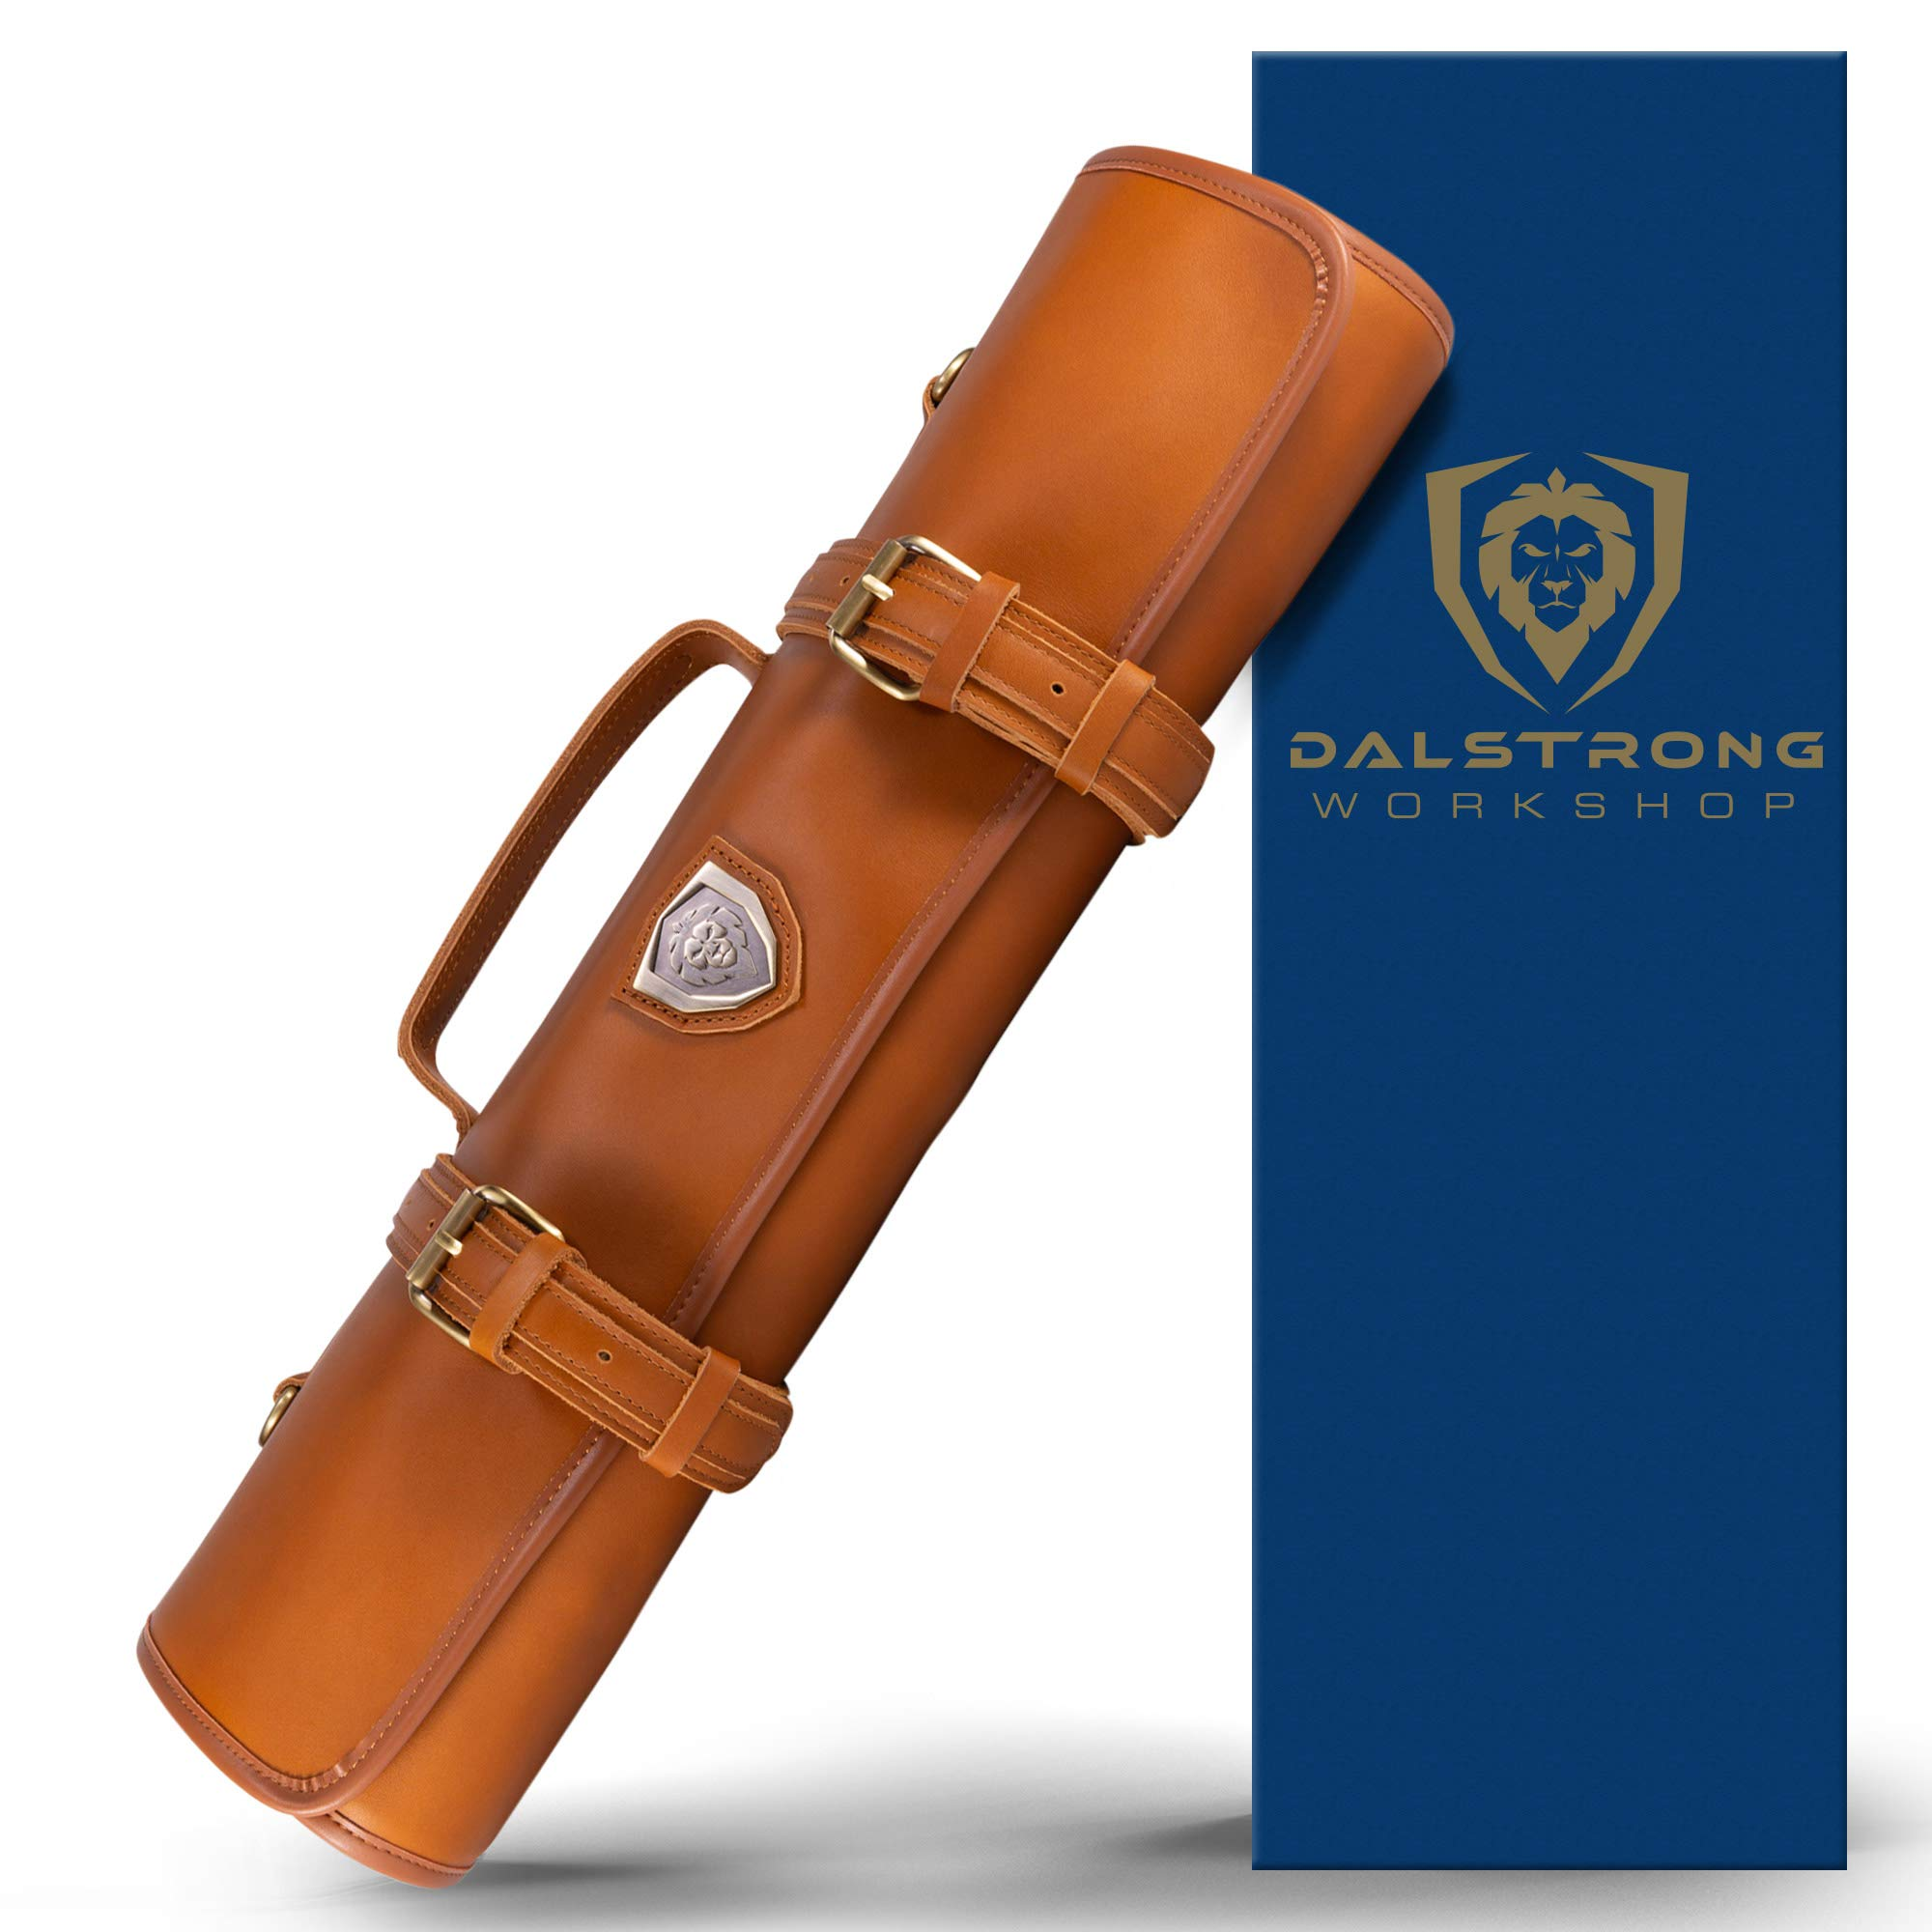 Dalstrong - Vagabond Knife Roll Full & Top Grain Brazilian Leather Roll Bag - 16 Slots - Interior and Rear Zippered Pockets - Blade Travel Storage/Case (California Brown) by Dalstrong